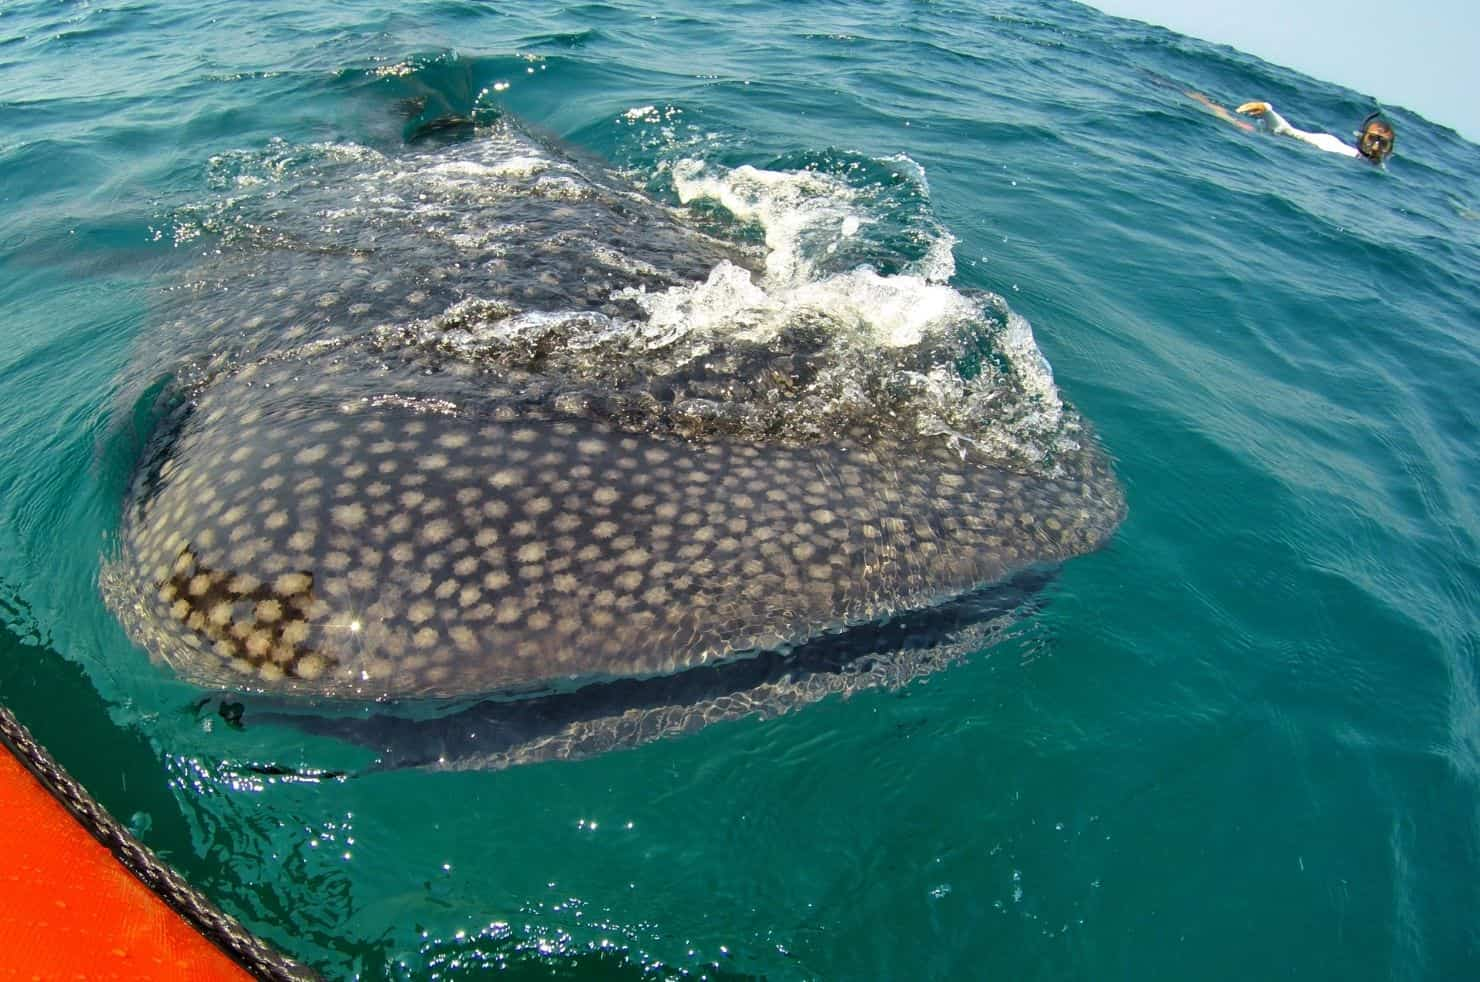 Whale Shark Breaching the Water in Tofo Mozambique